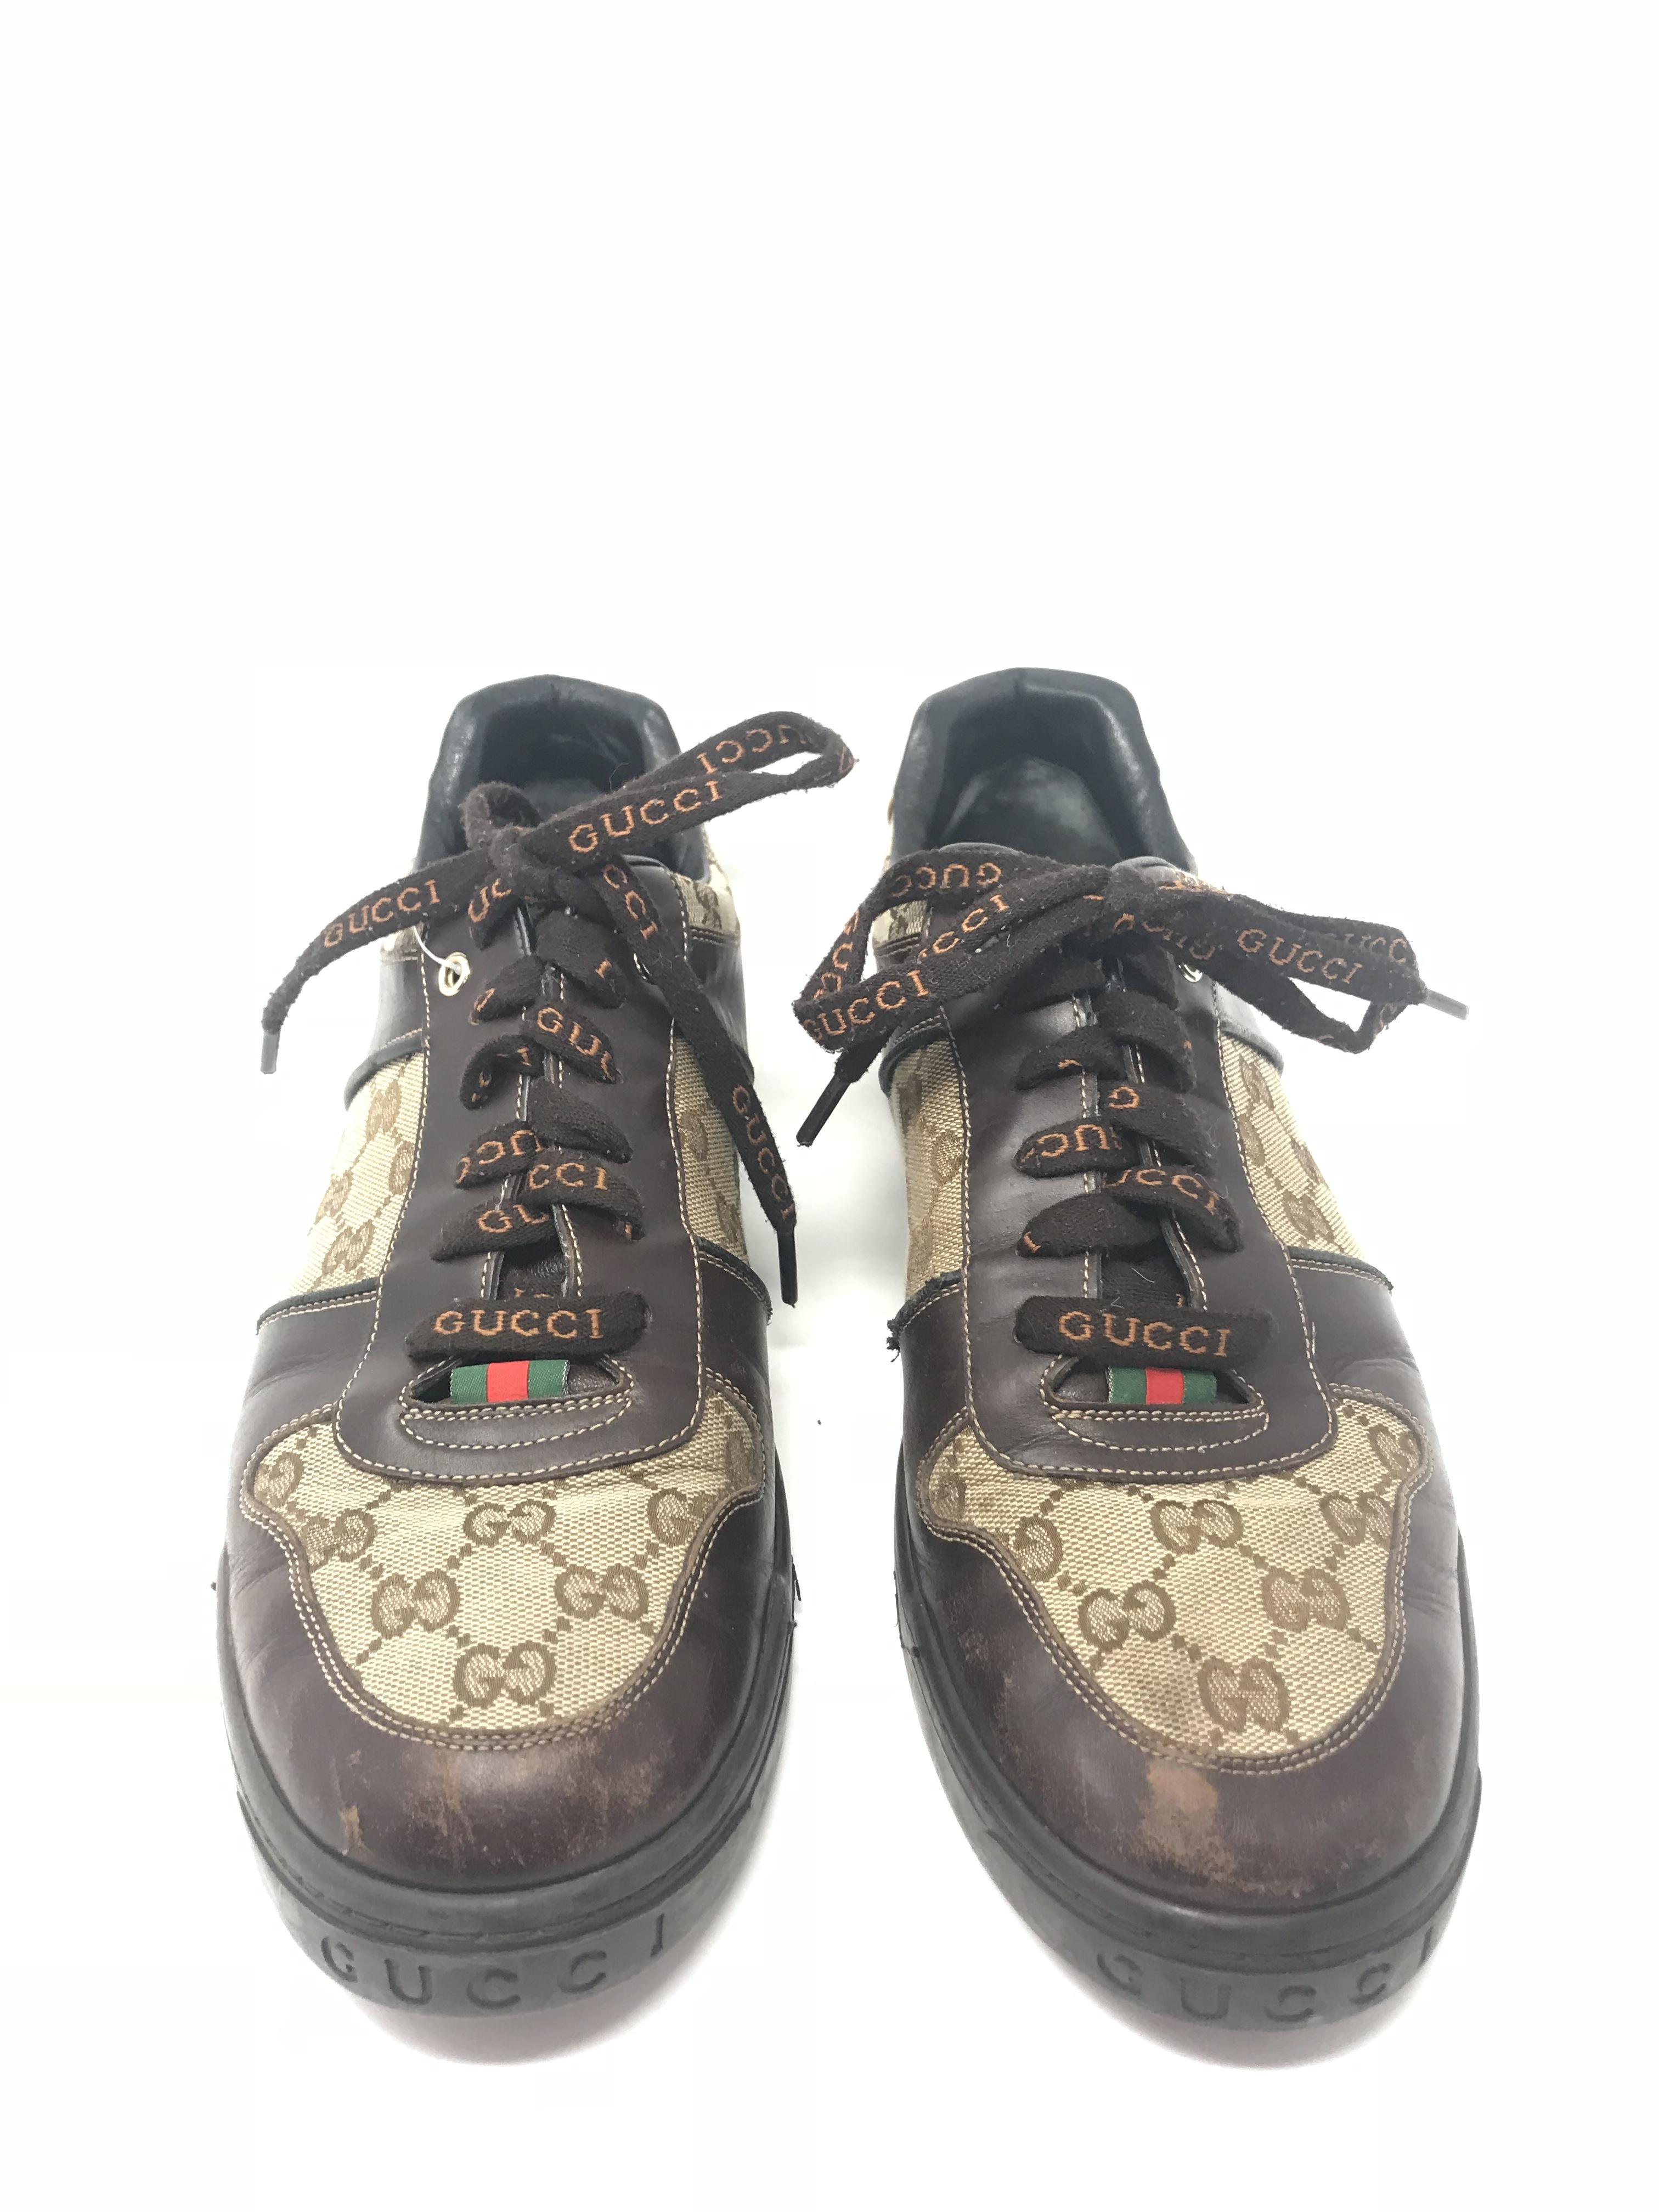 Gucci Shoes Price: $138.99